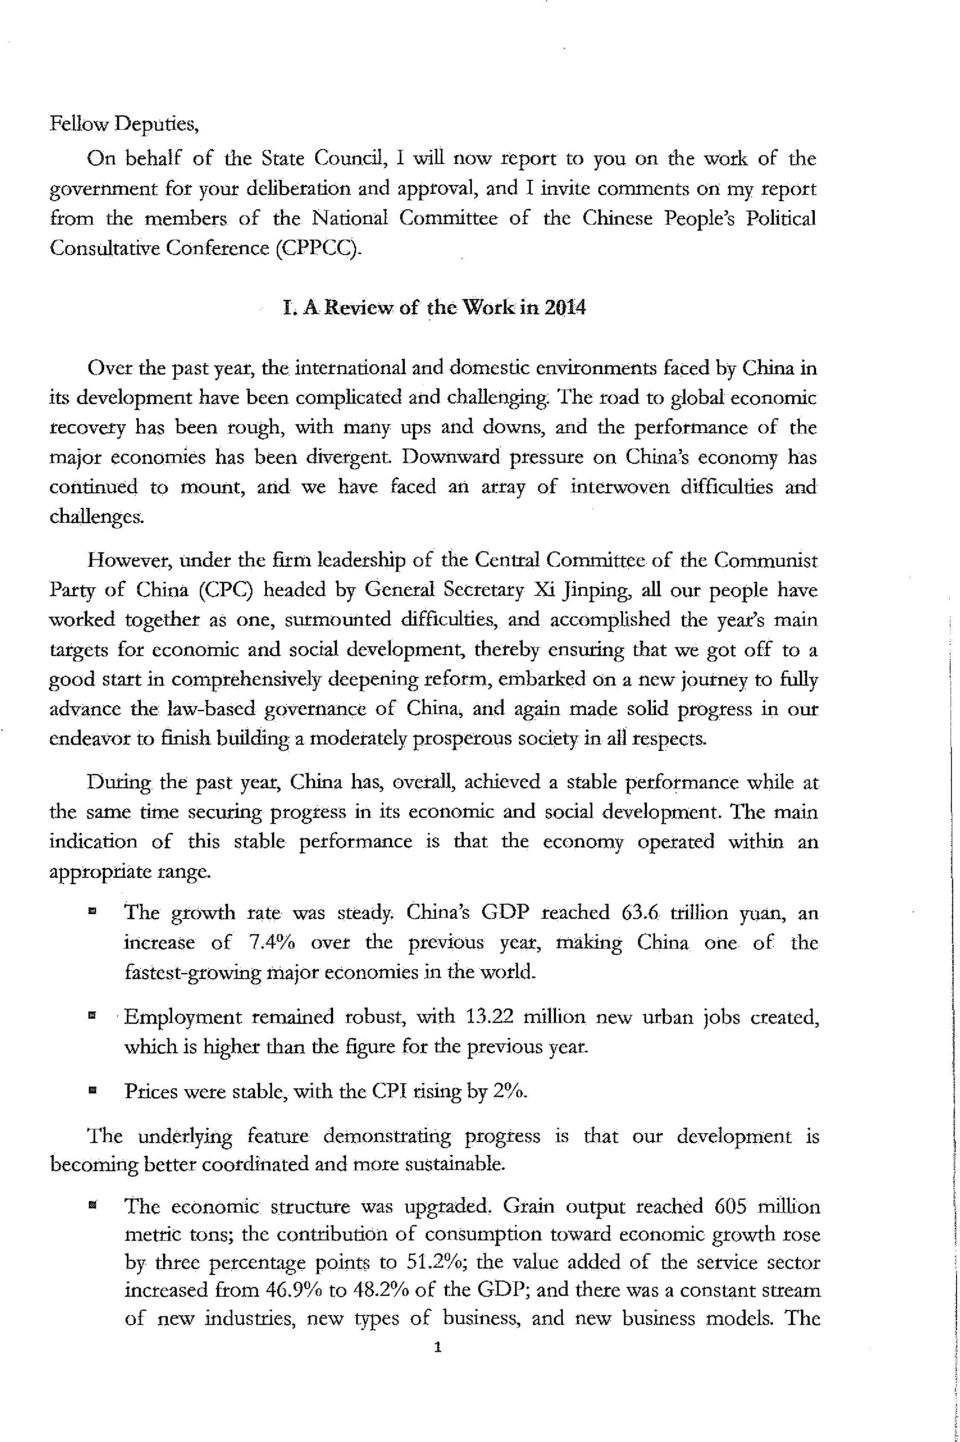 A Review of the Work in 2014 Over the past year, 也 e interna 包 onal and domestic environments faced by China in its development have been complicated and challenging.